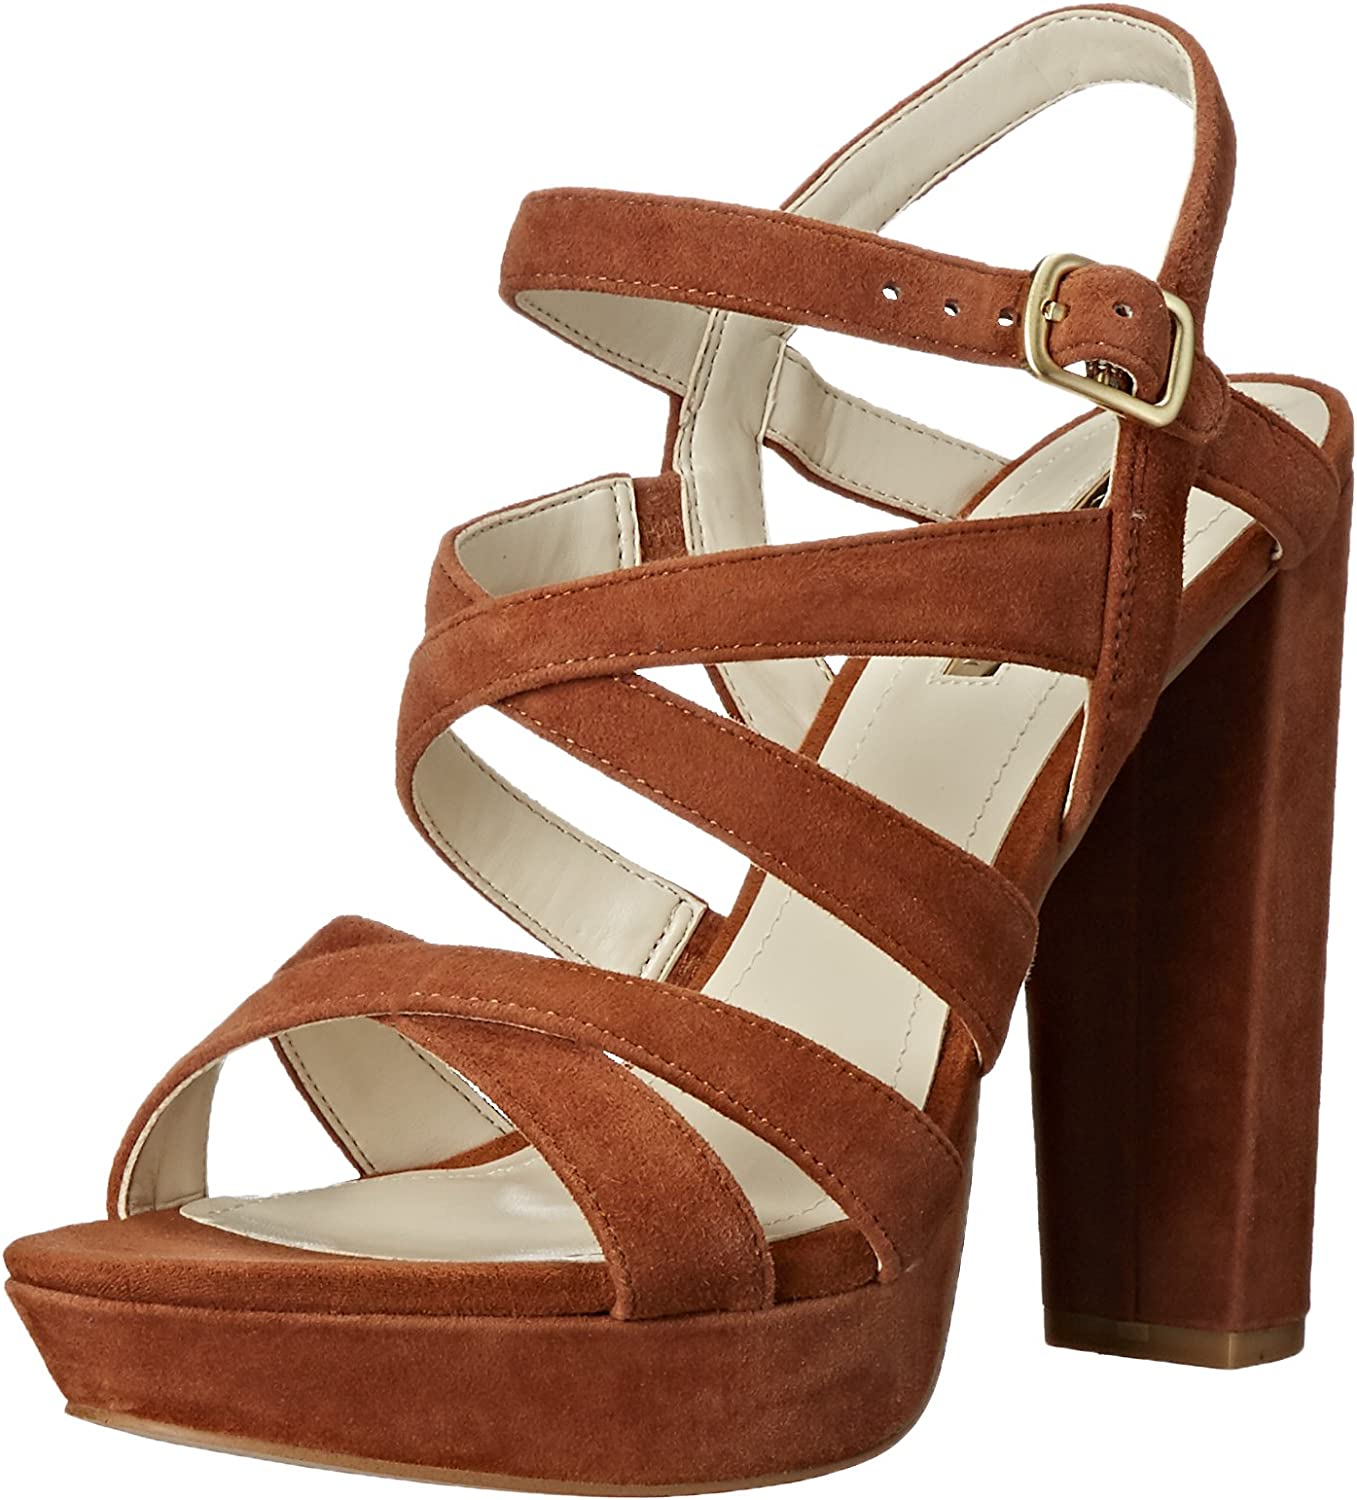 BCBGeneration Women's Morgan Block Heel Sandal